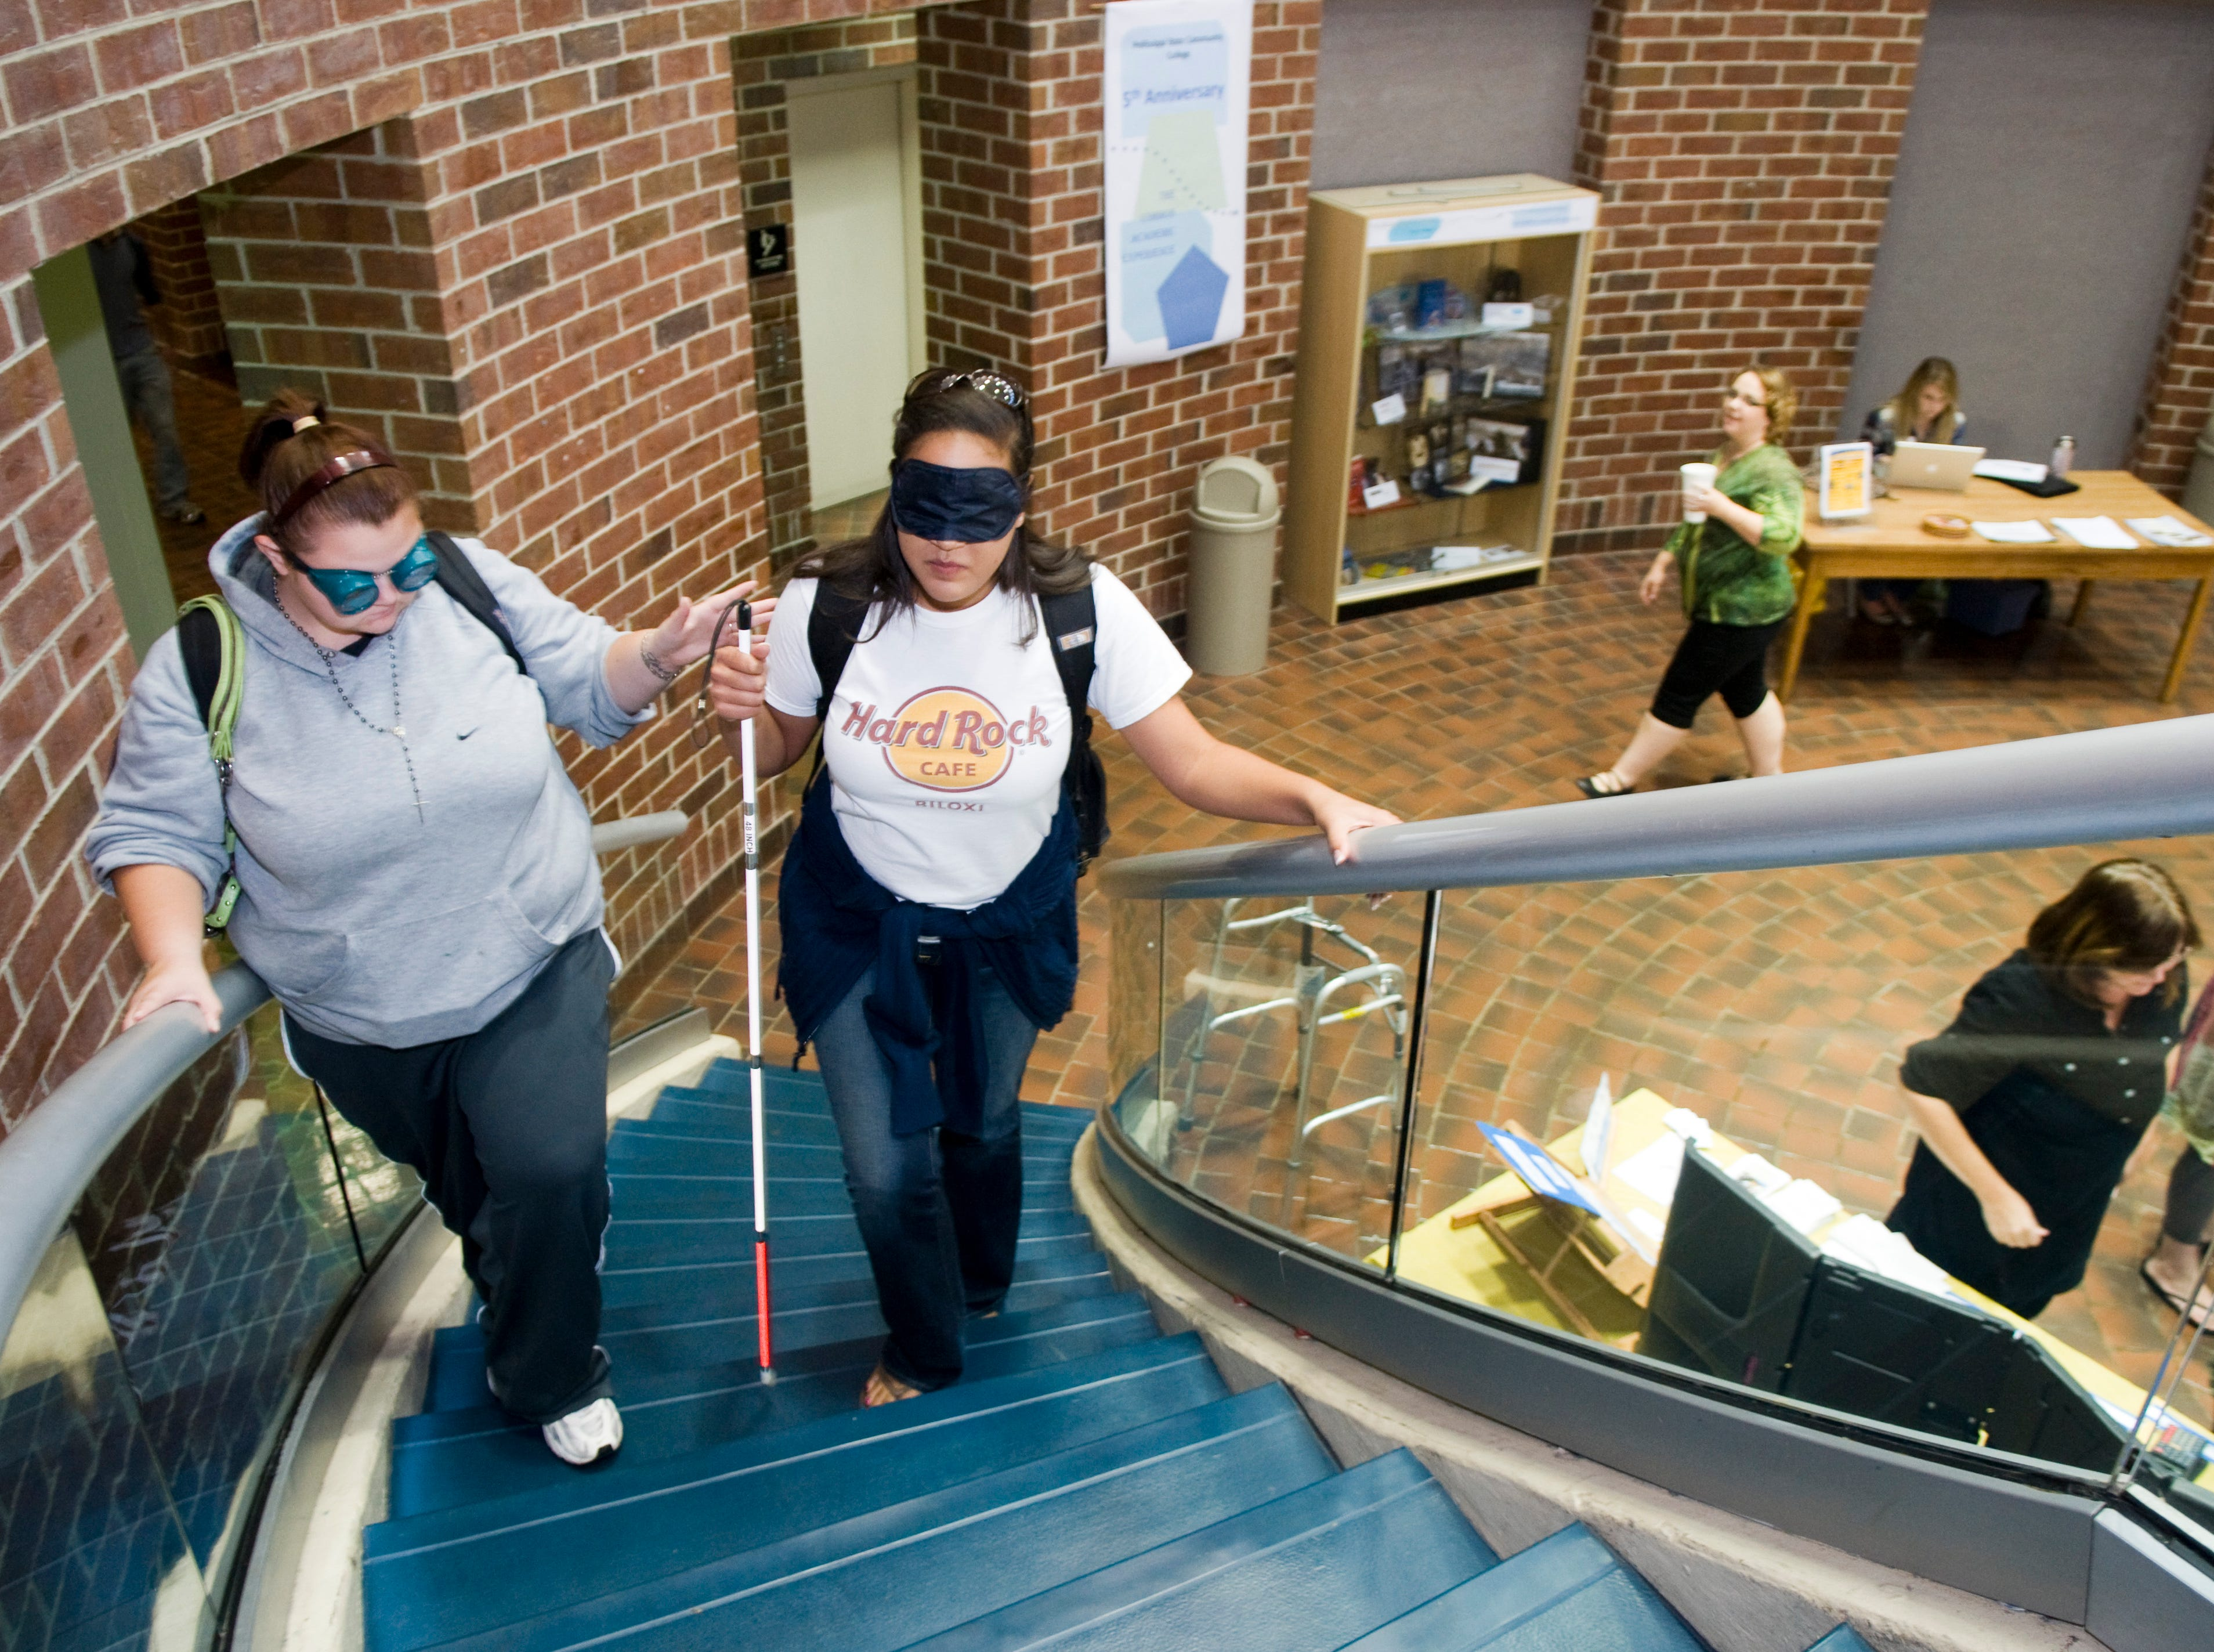 Students Victoria Love, left, and Tiffany Simpson take part in the 'Walk a Mile in My Shoes' disability awareness program Thursday, Oct. 21, 2010 at Pellissippi State Community College. Students, faculty, staff and community members were invited to 'try on' a disability and go about the routine of work and school as part of National Disability Employment Awareness Month.